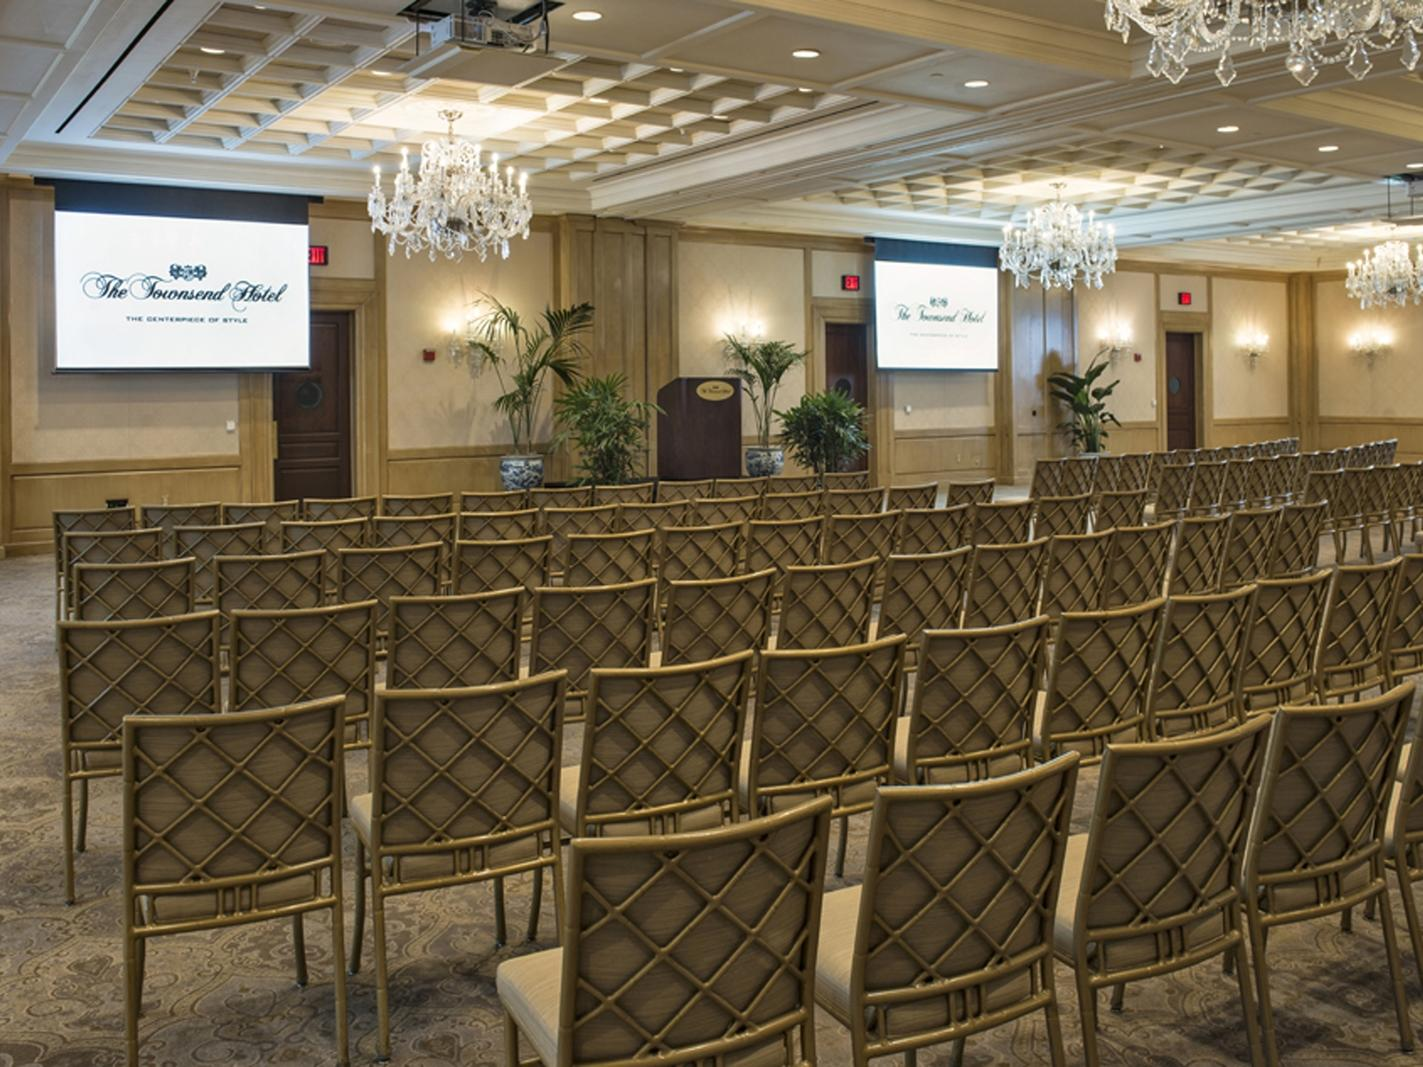 rows of chairs in a hotel event room